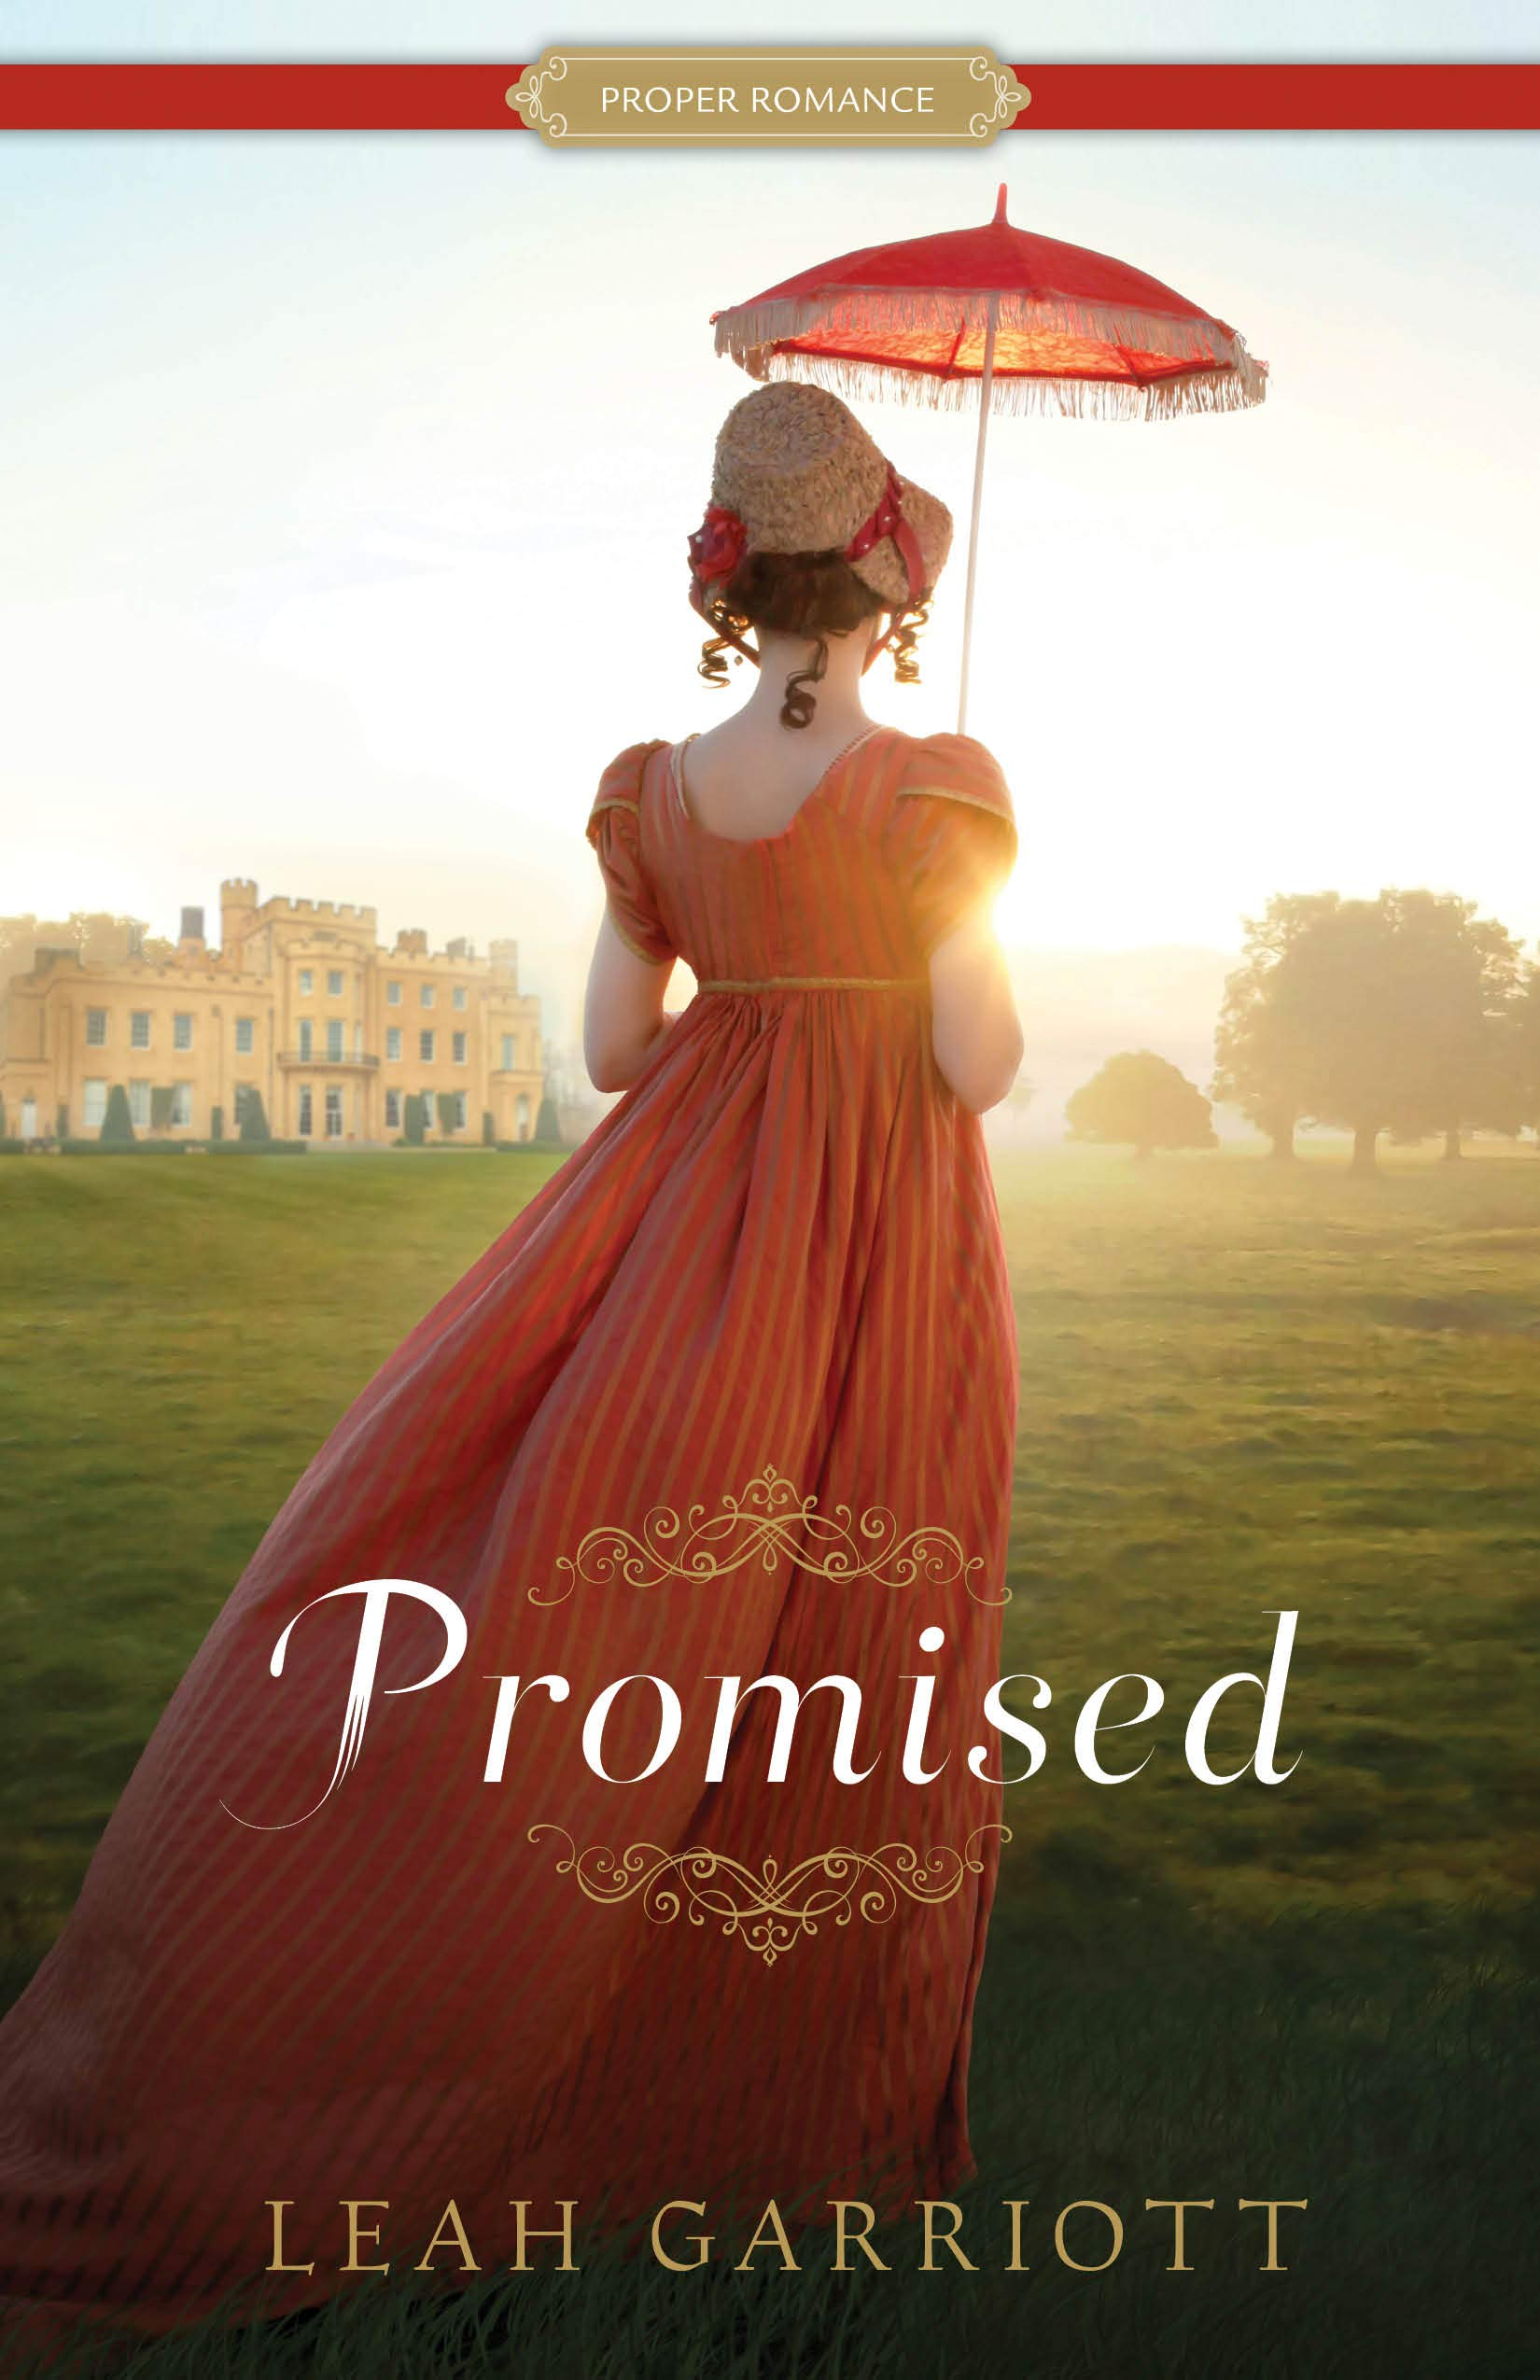 Promised, by Leah Garriott (2020)